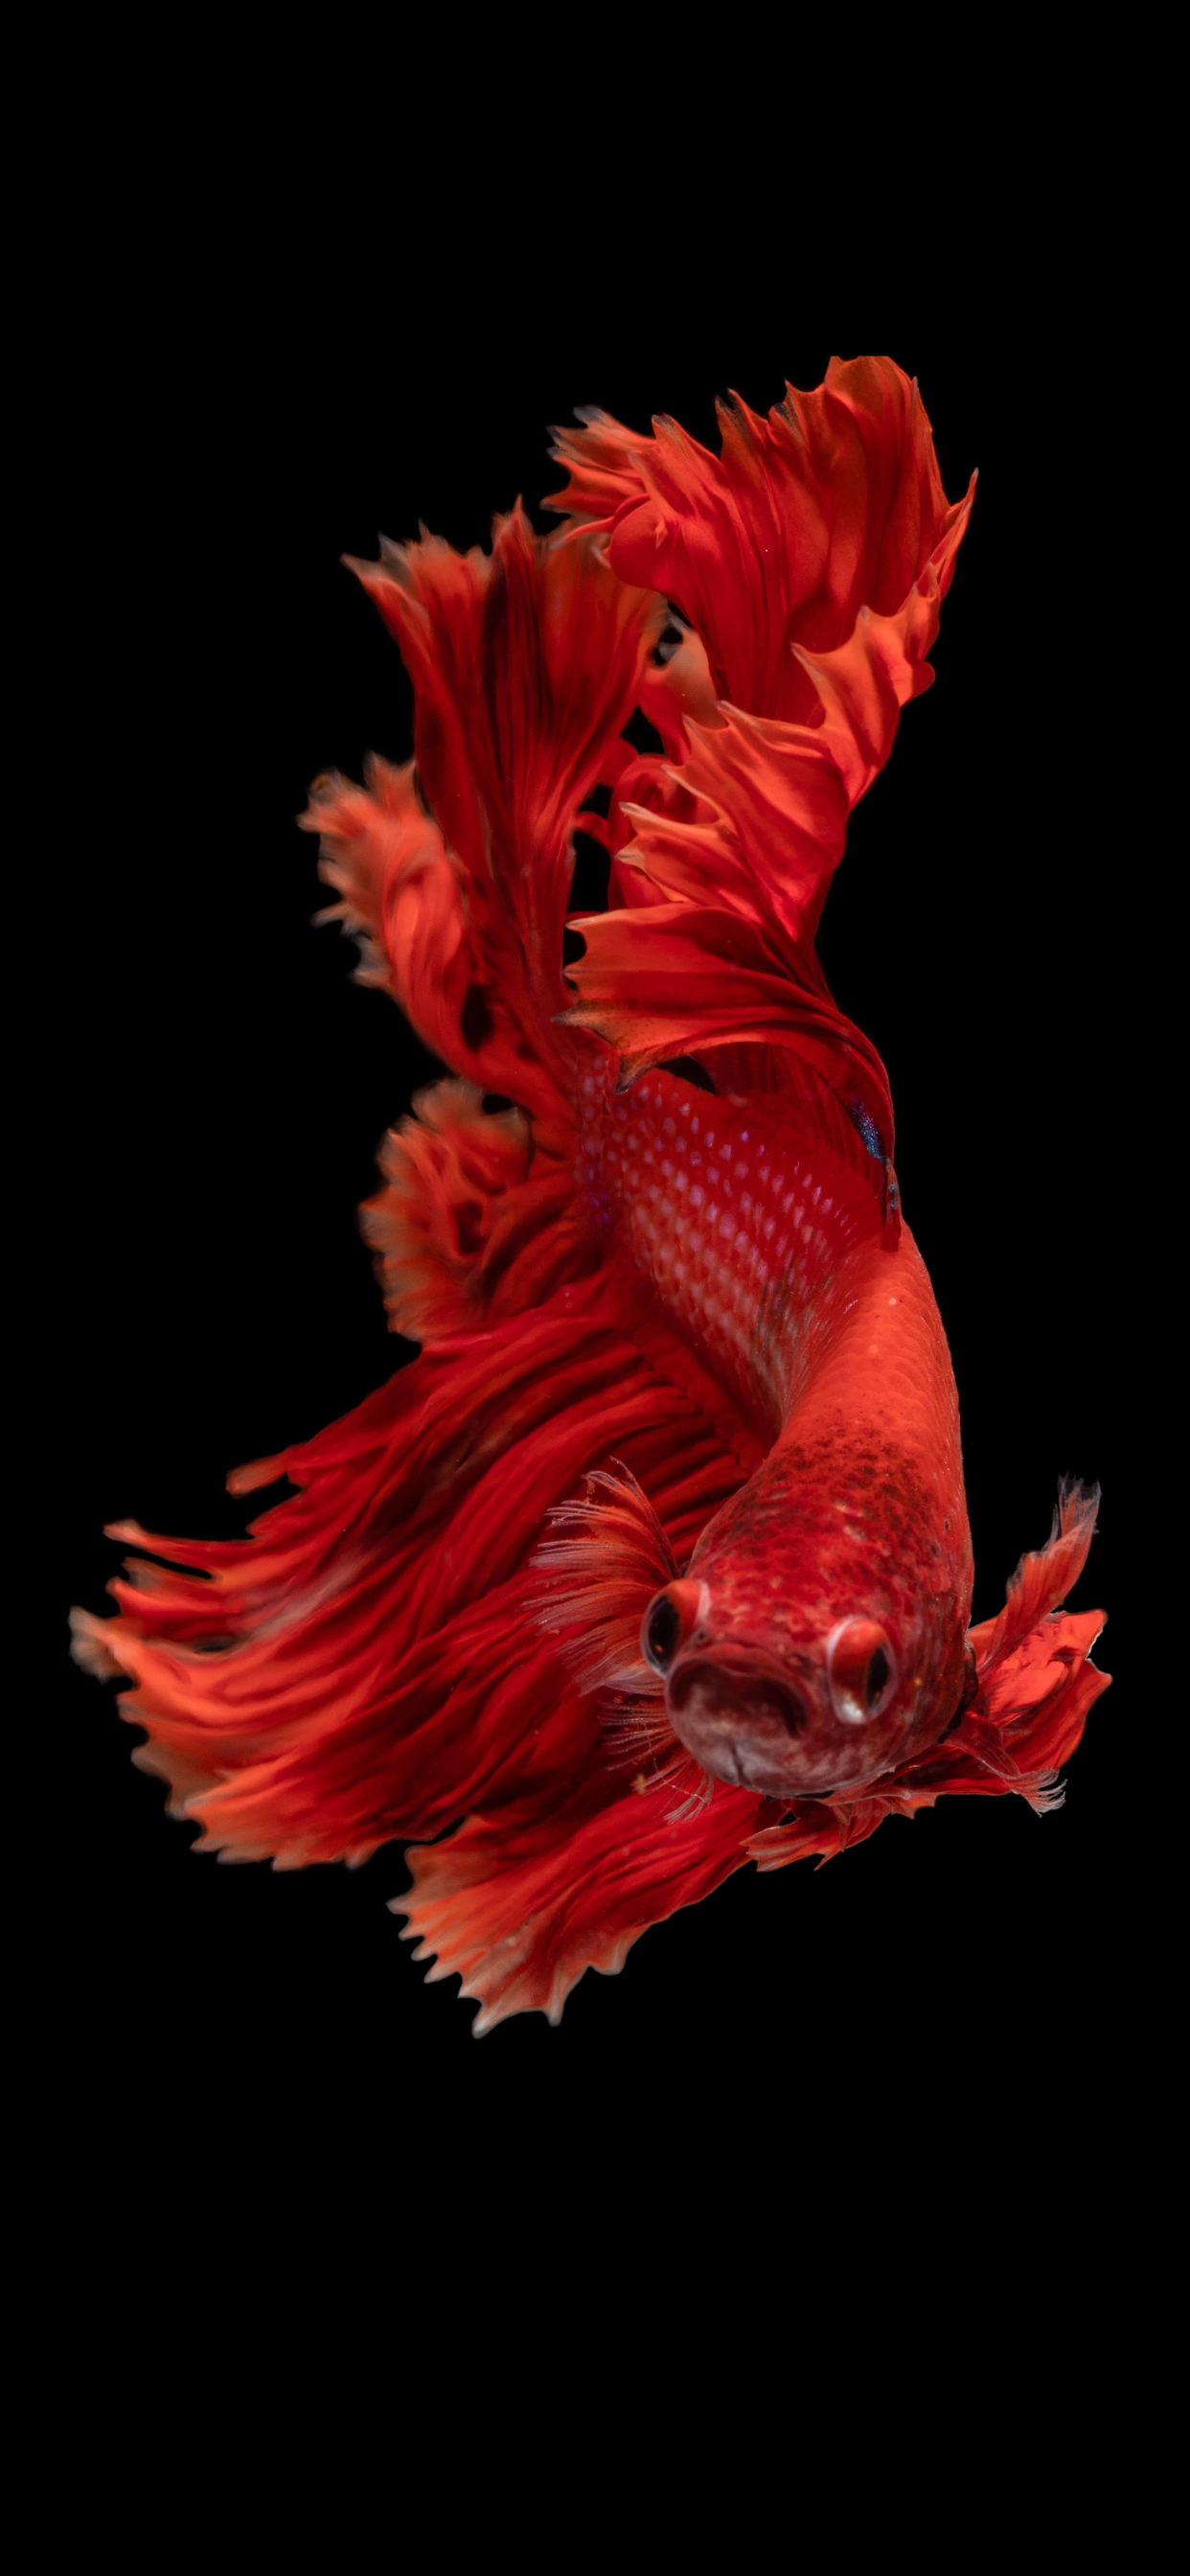 iPhone wallpapers fish red Fish